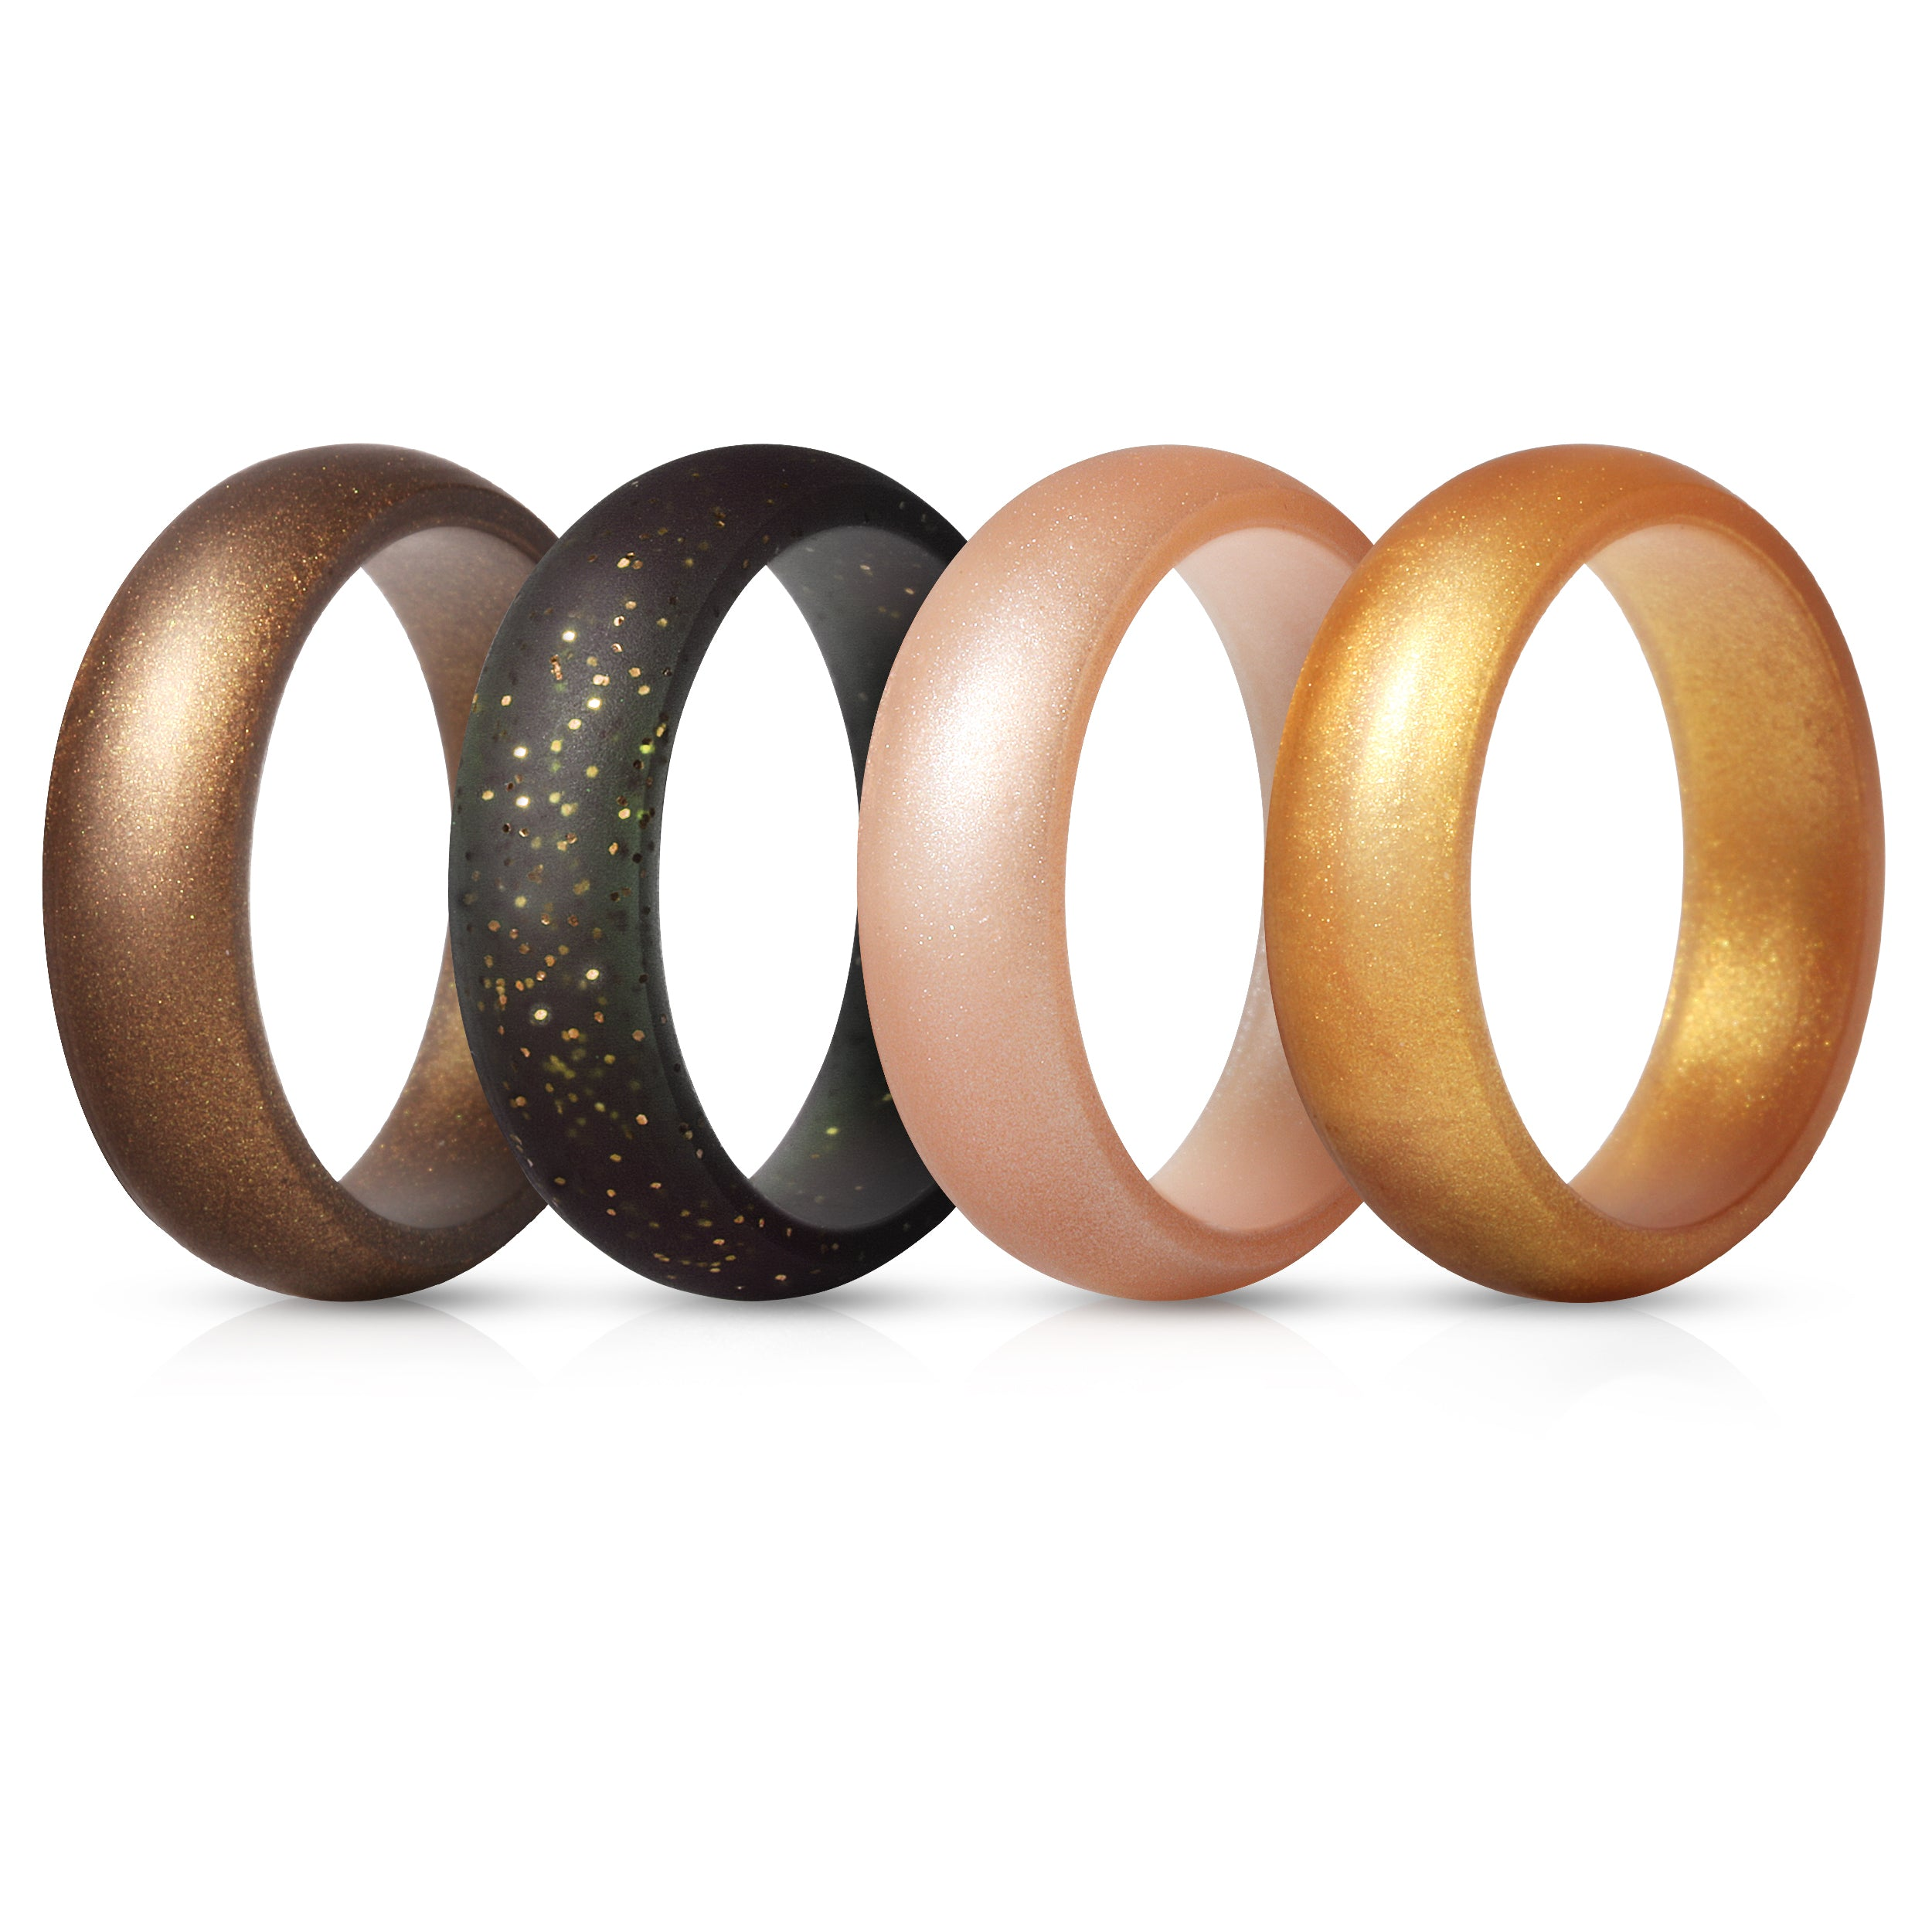 Women's Rings 4 Pack - Black with Yellow Glitter, Gold, Rose Gold, Bronze